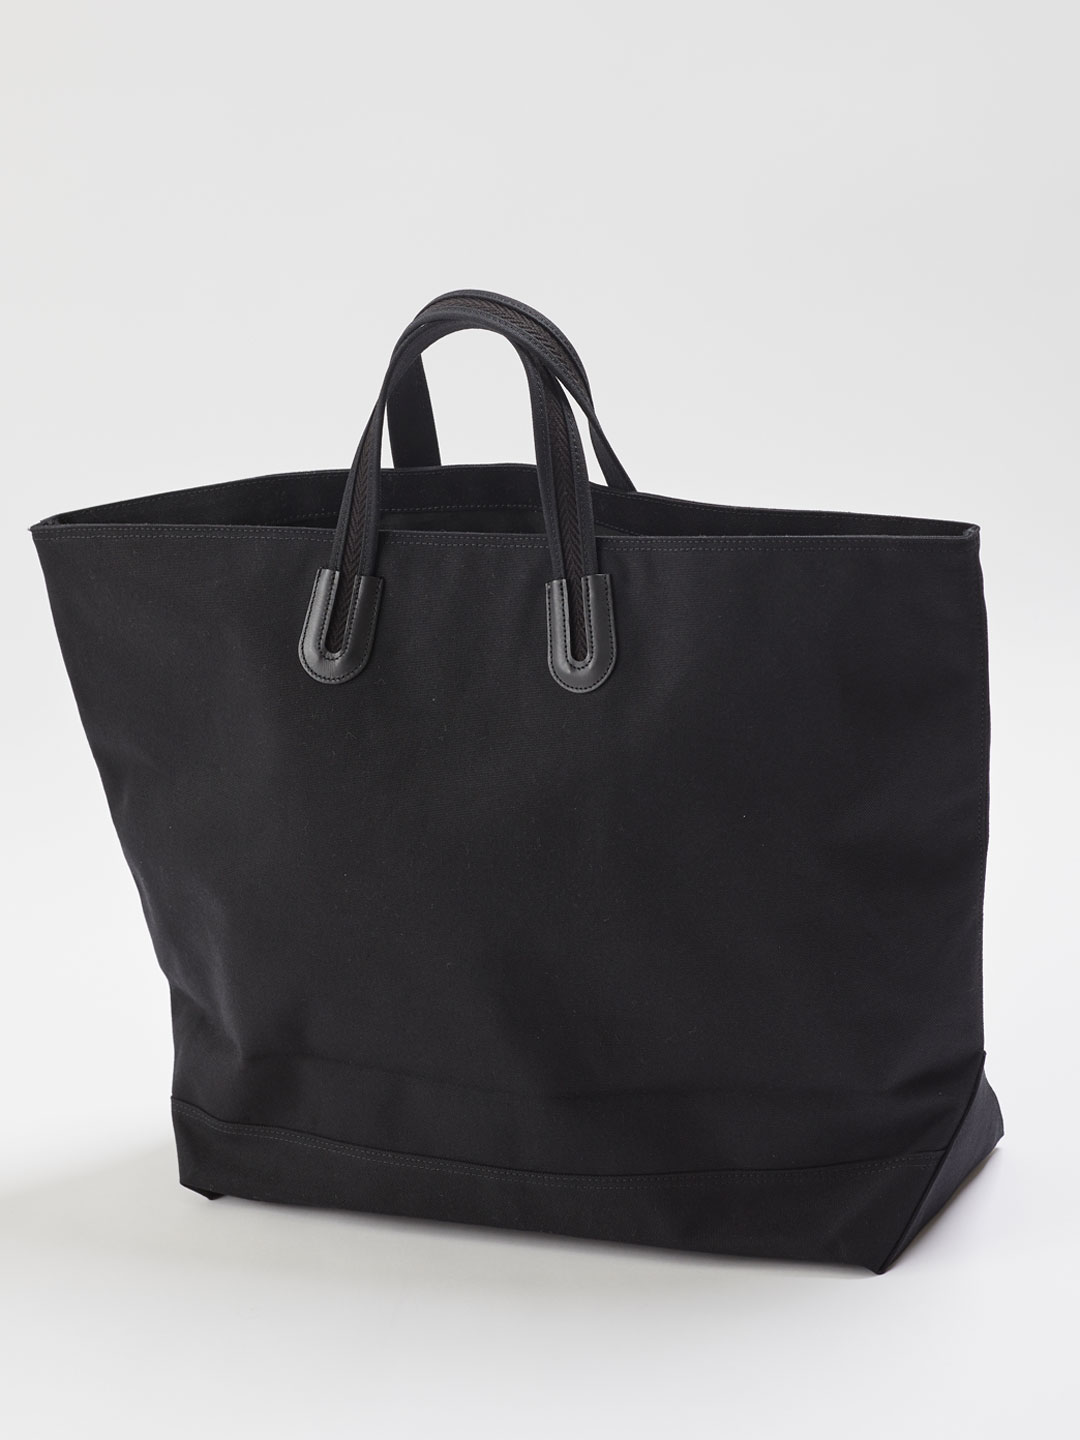 Arles XL SOLID - Black